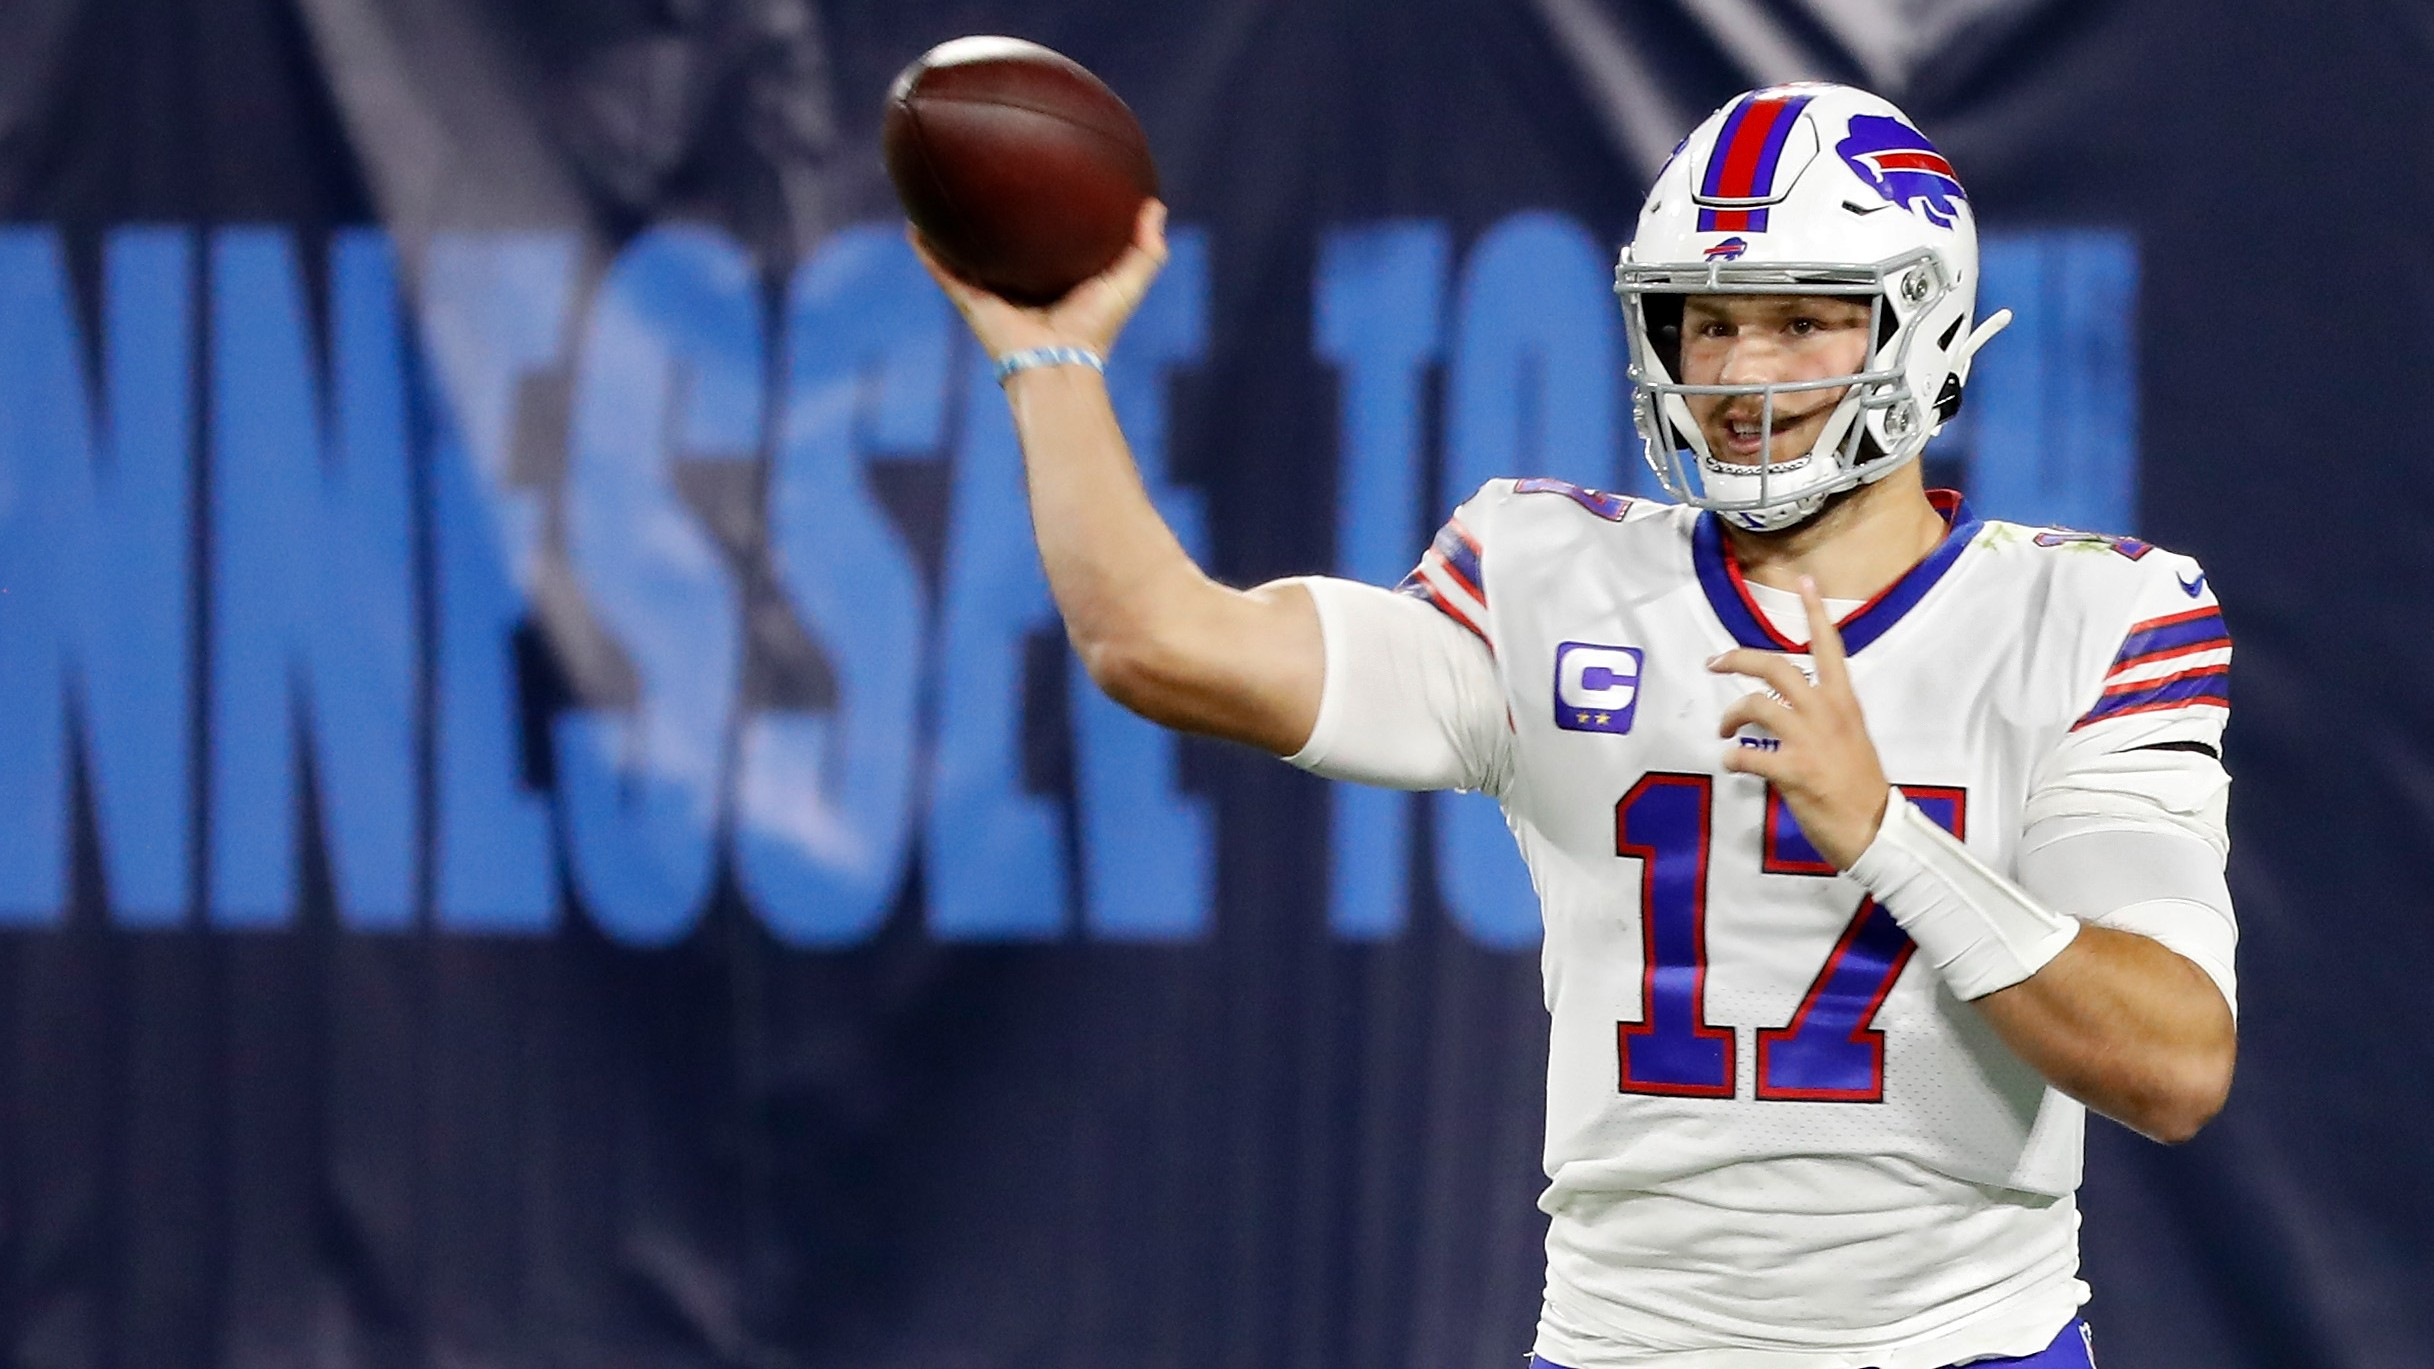 How did Josh Allen go from bad to good? Bills provide master class in how to draft, support a franchise QB